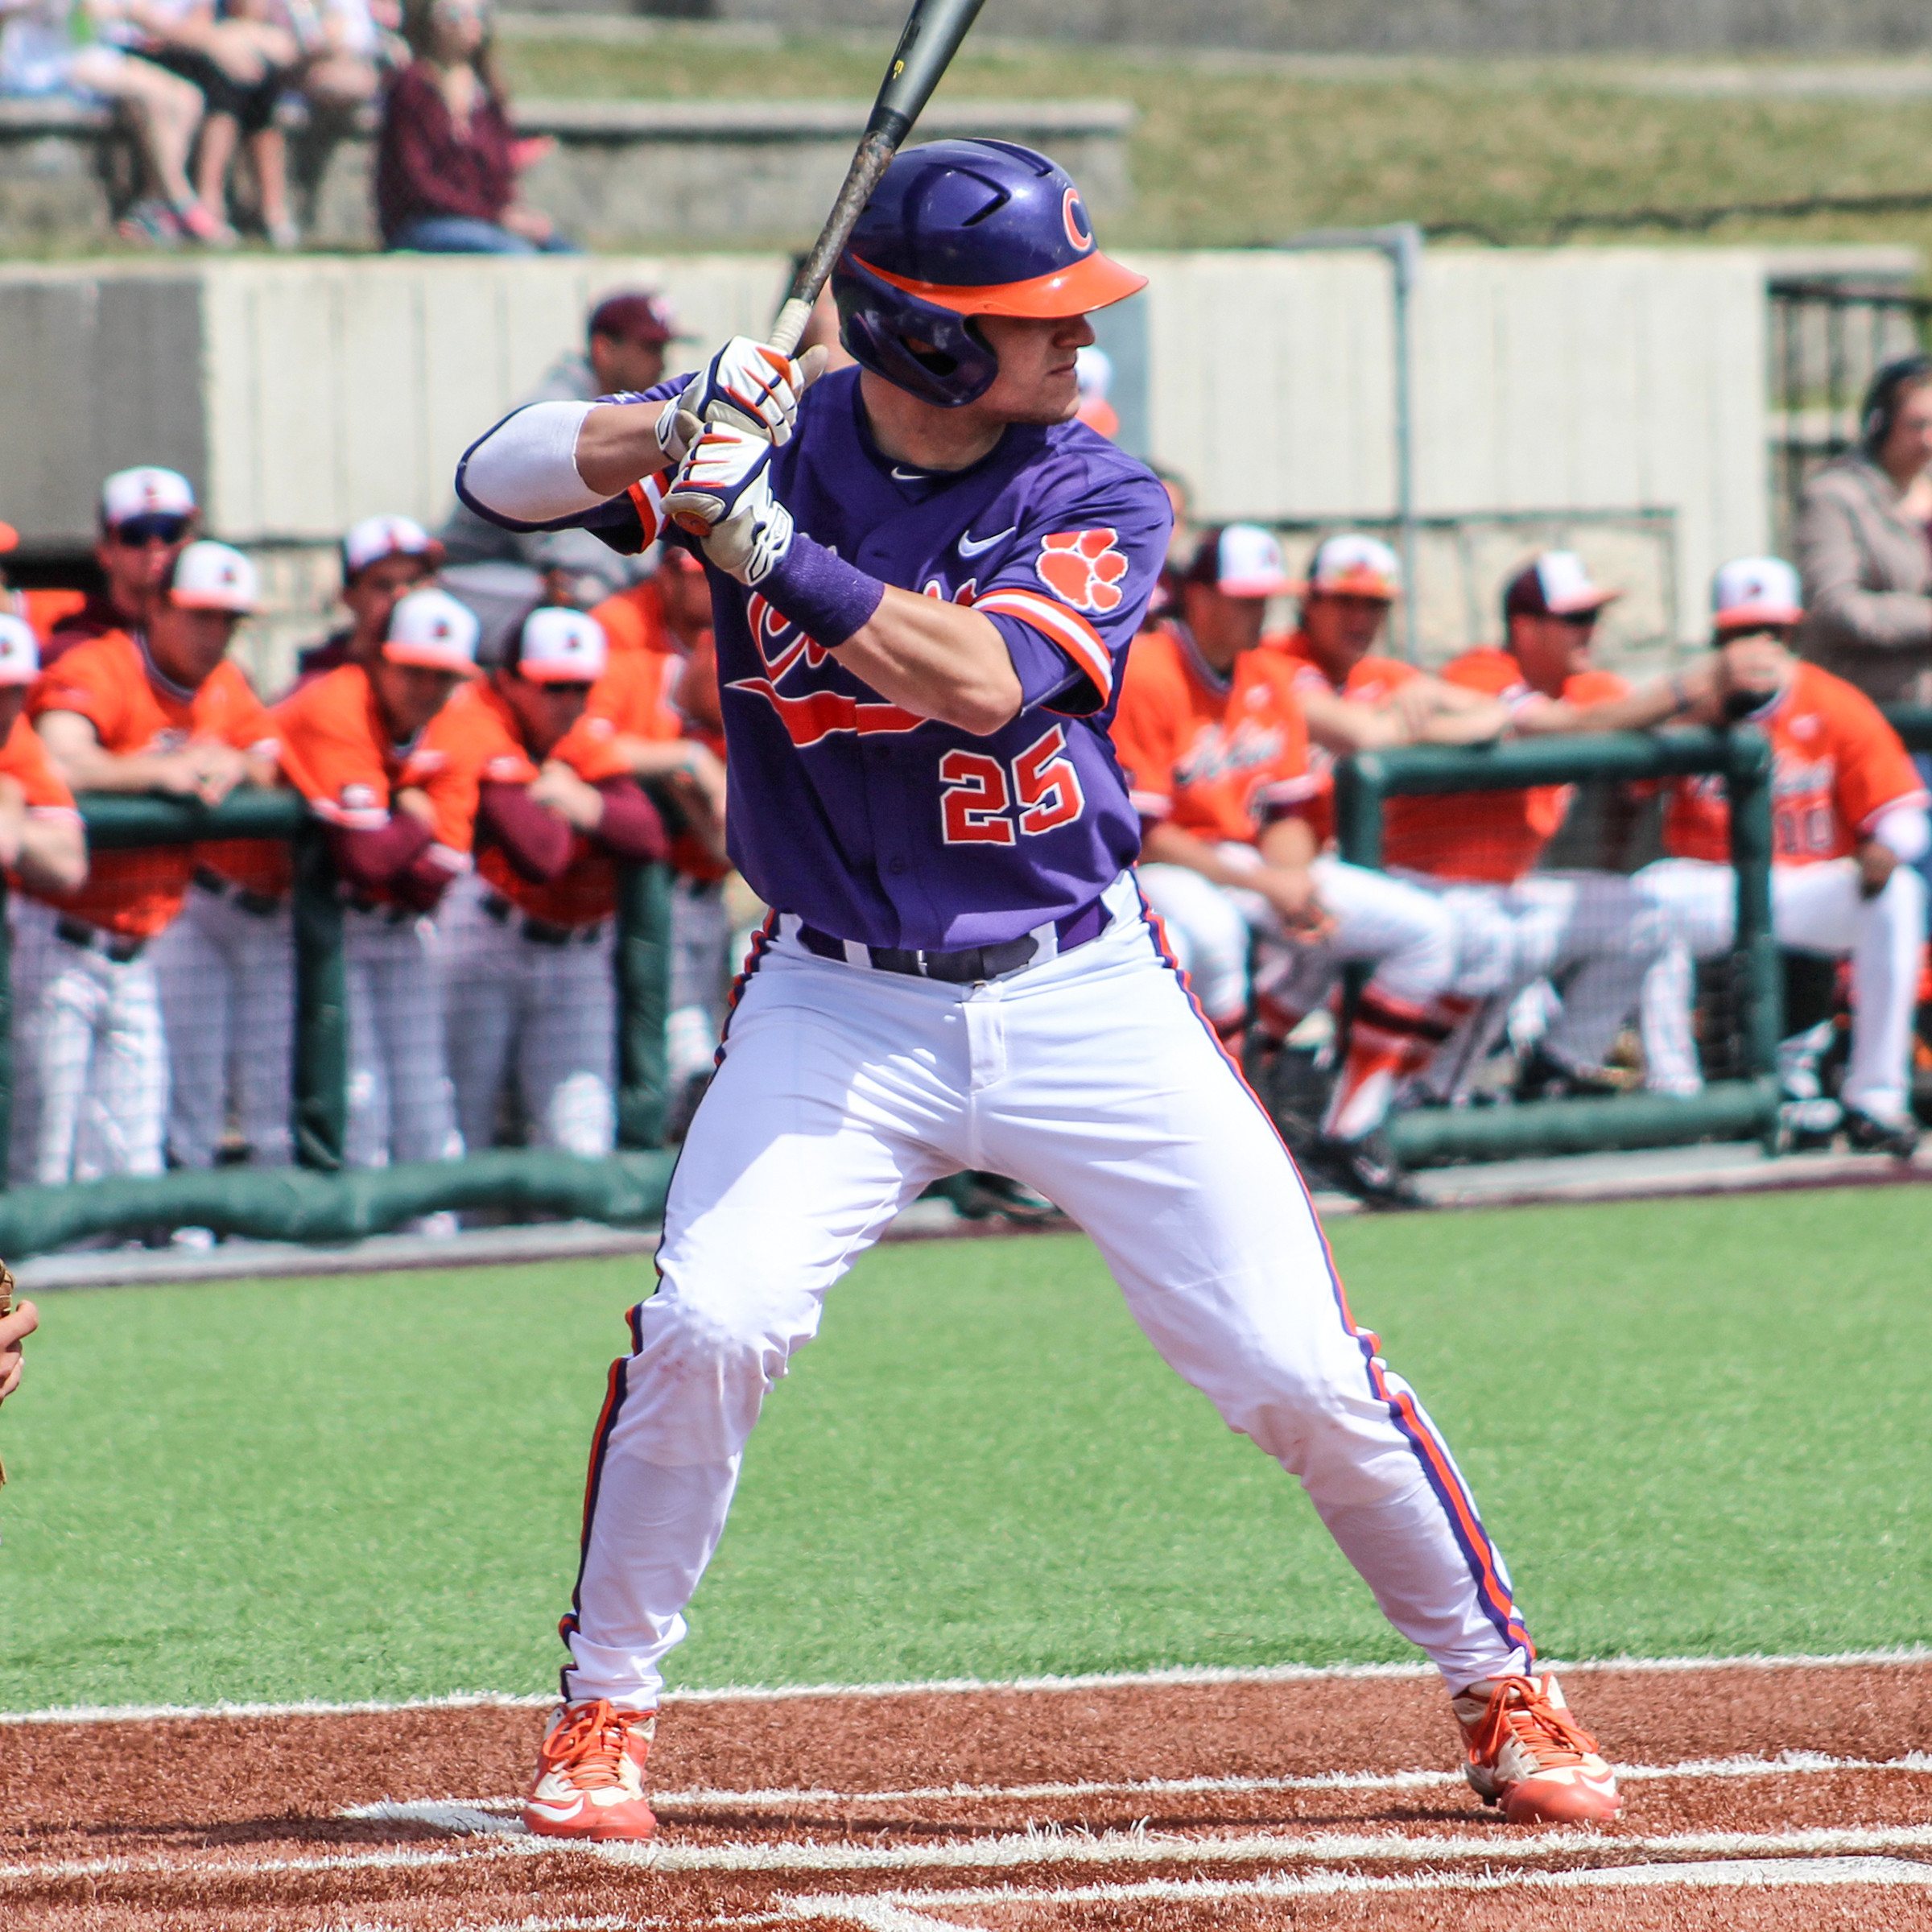 Hokies Edge Tigers 4-3 in 12